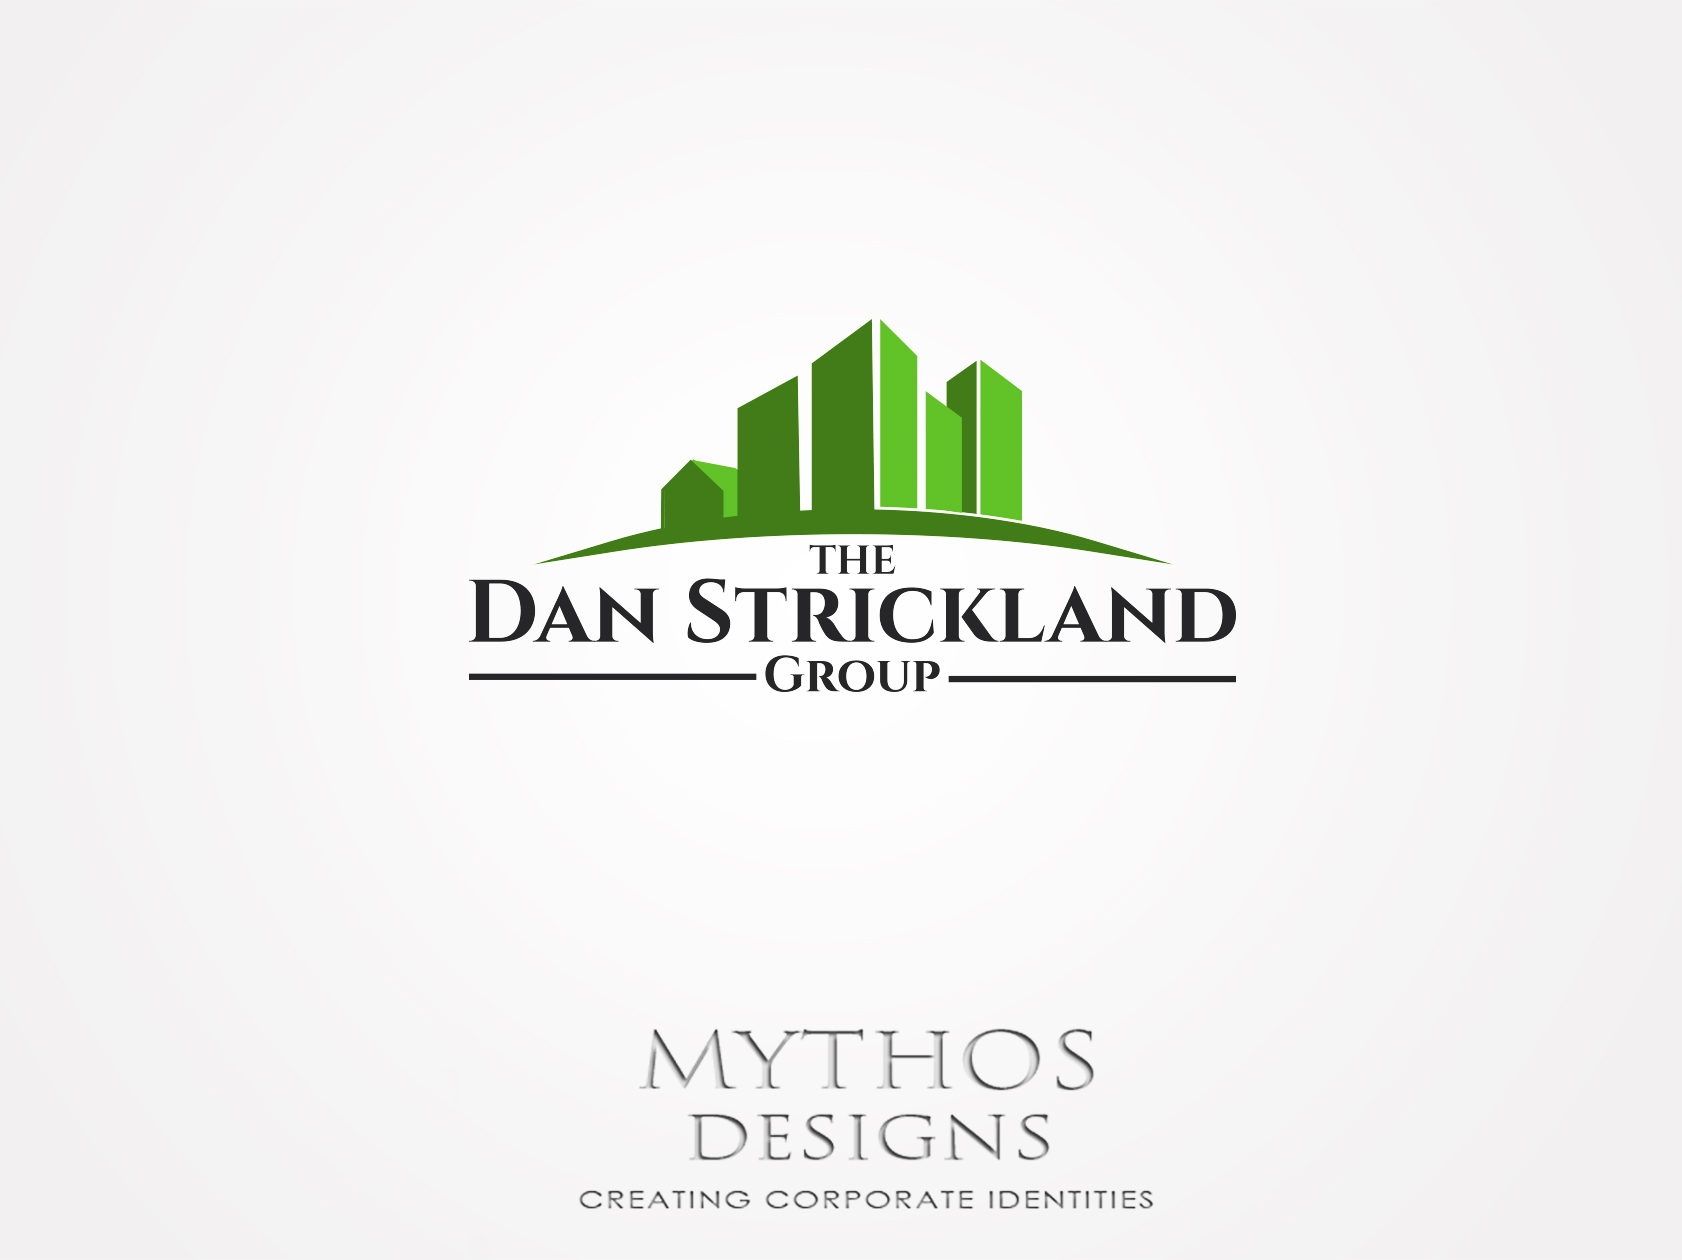 Logo Design by Mythos Designs - Entry No. 242 in the Logo Design Contest Creative Logo Design for The Dan Strickland Group.